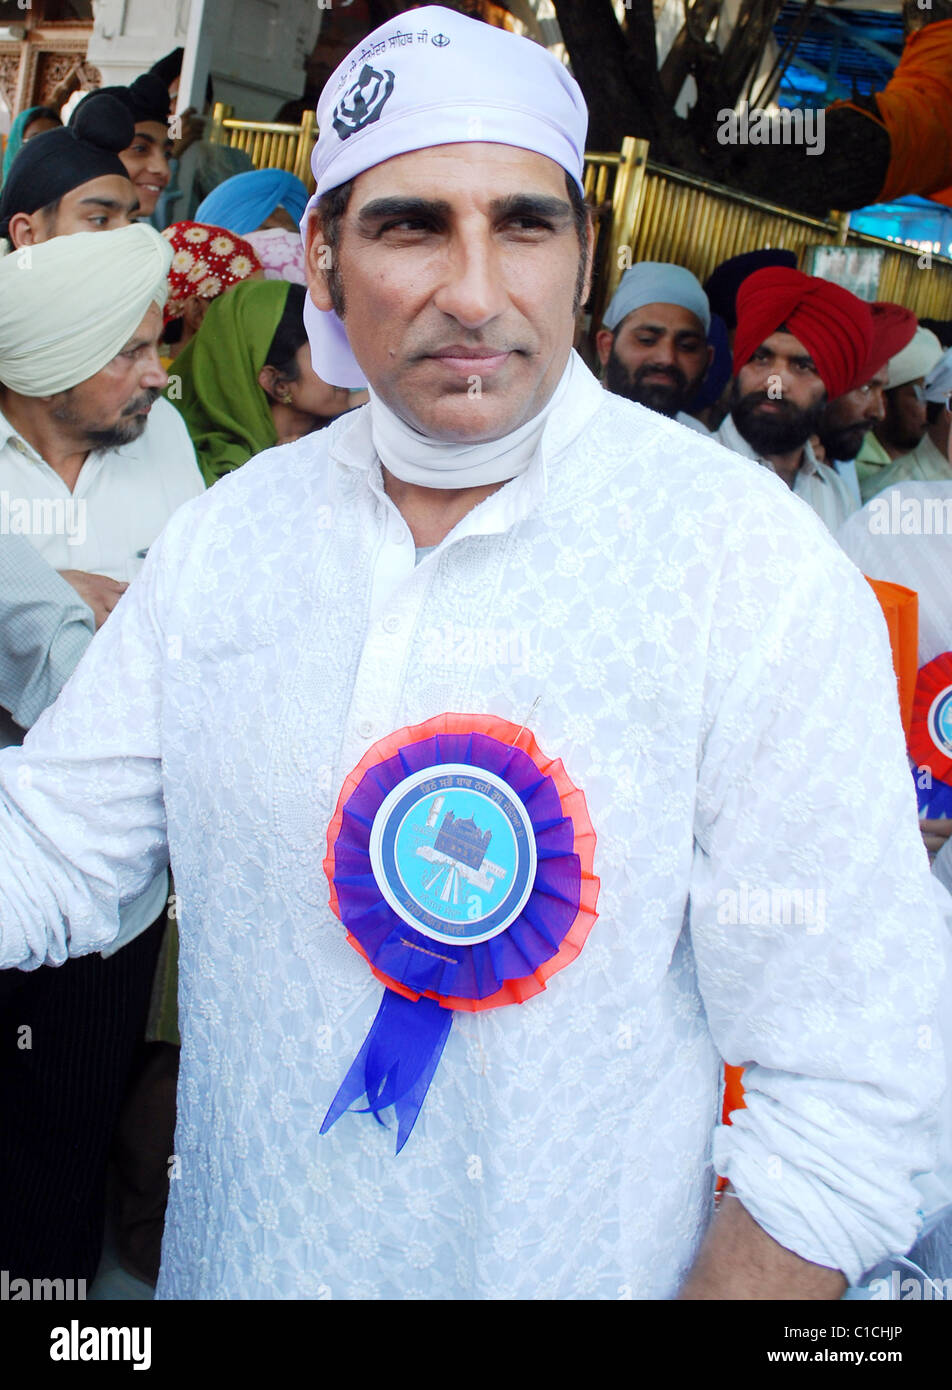 Bollywood Actor Mukesh Rishi on his way to pay obeisance at Golden Temple during his visit in Amritsar Amritsar, Stock Photo